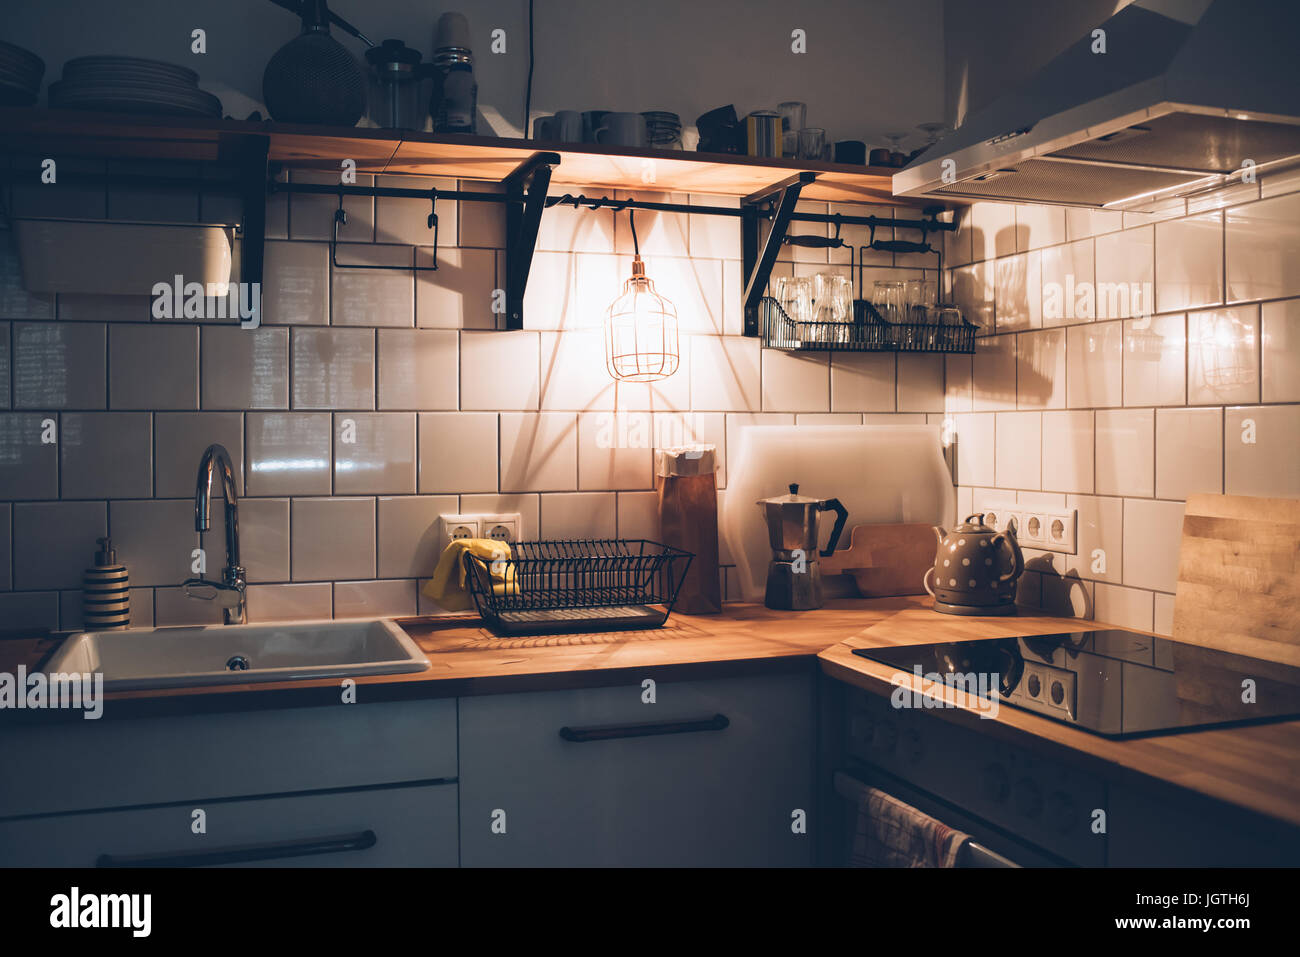 Vintage White Kitchen Interior Cooking Objects With Warm Light